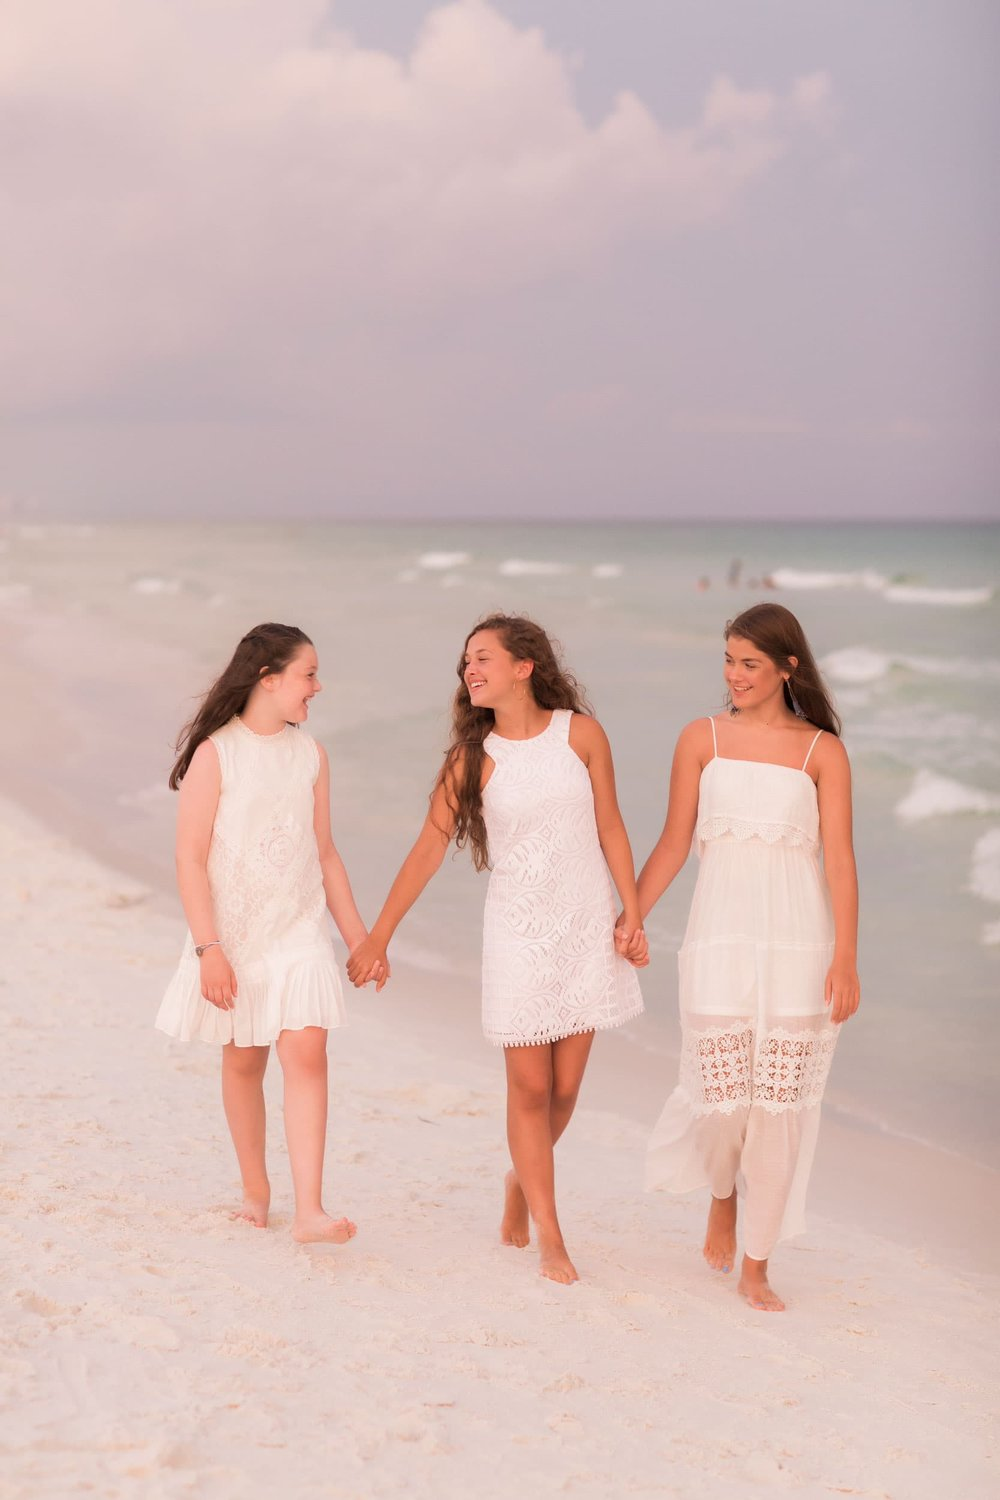 destin beach photographer session with young girl in beach 30A beach photo session